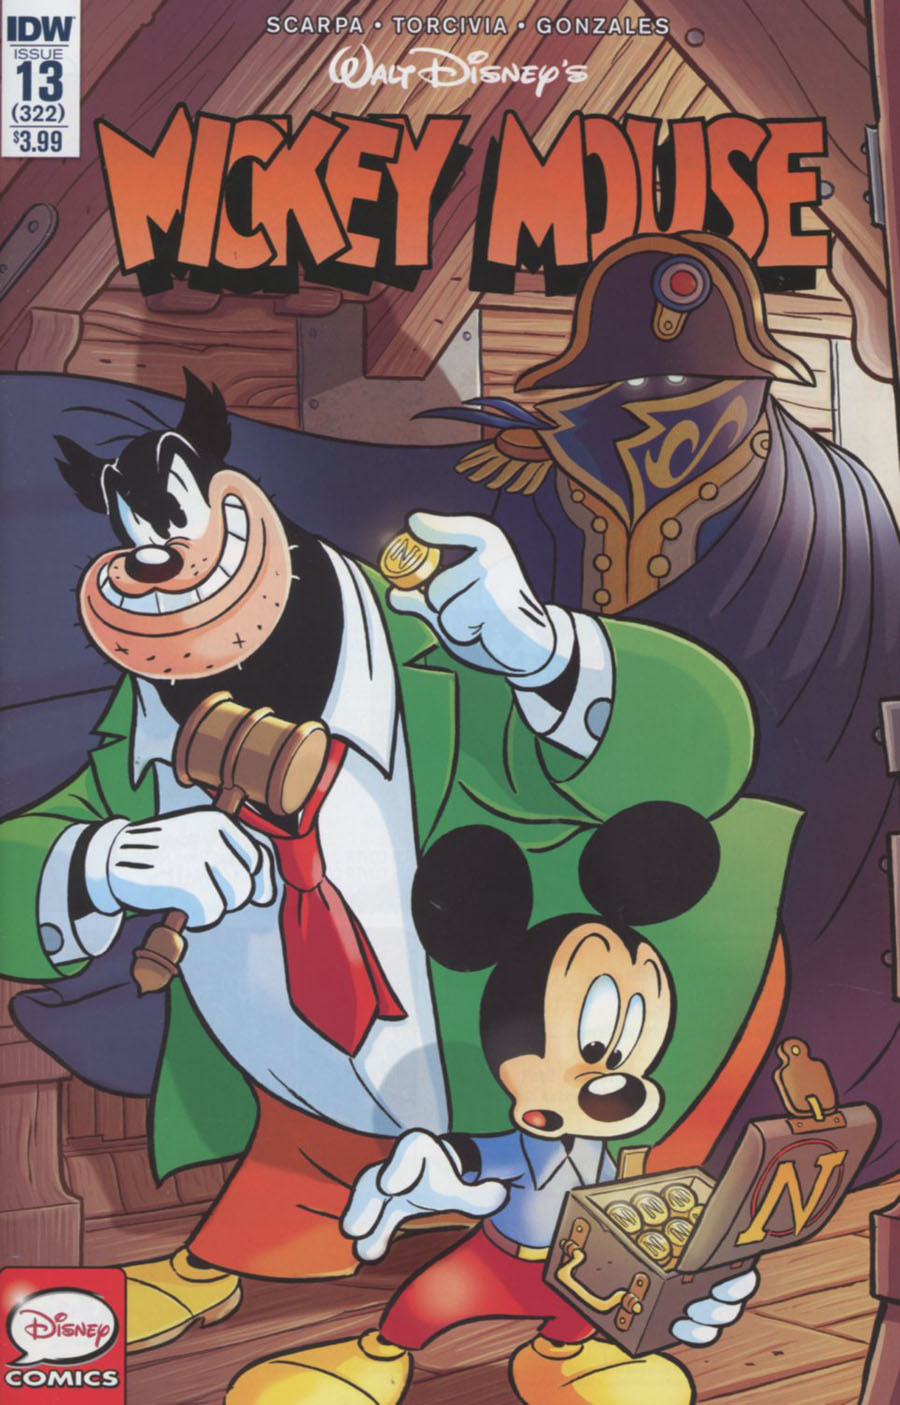 Mickey Mouse Vol 2 #13 Cover A Regular Andrea Freccero Cover